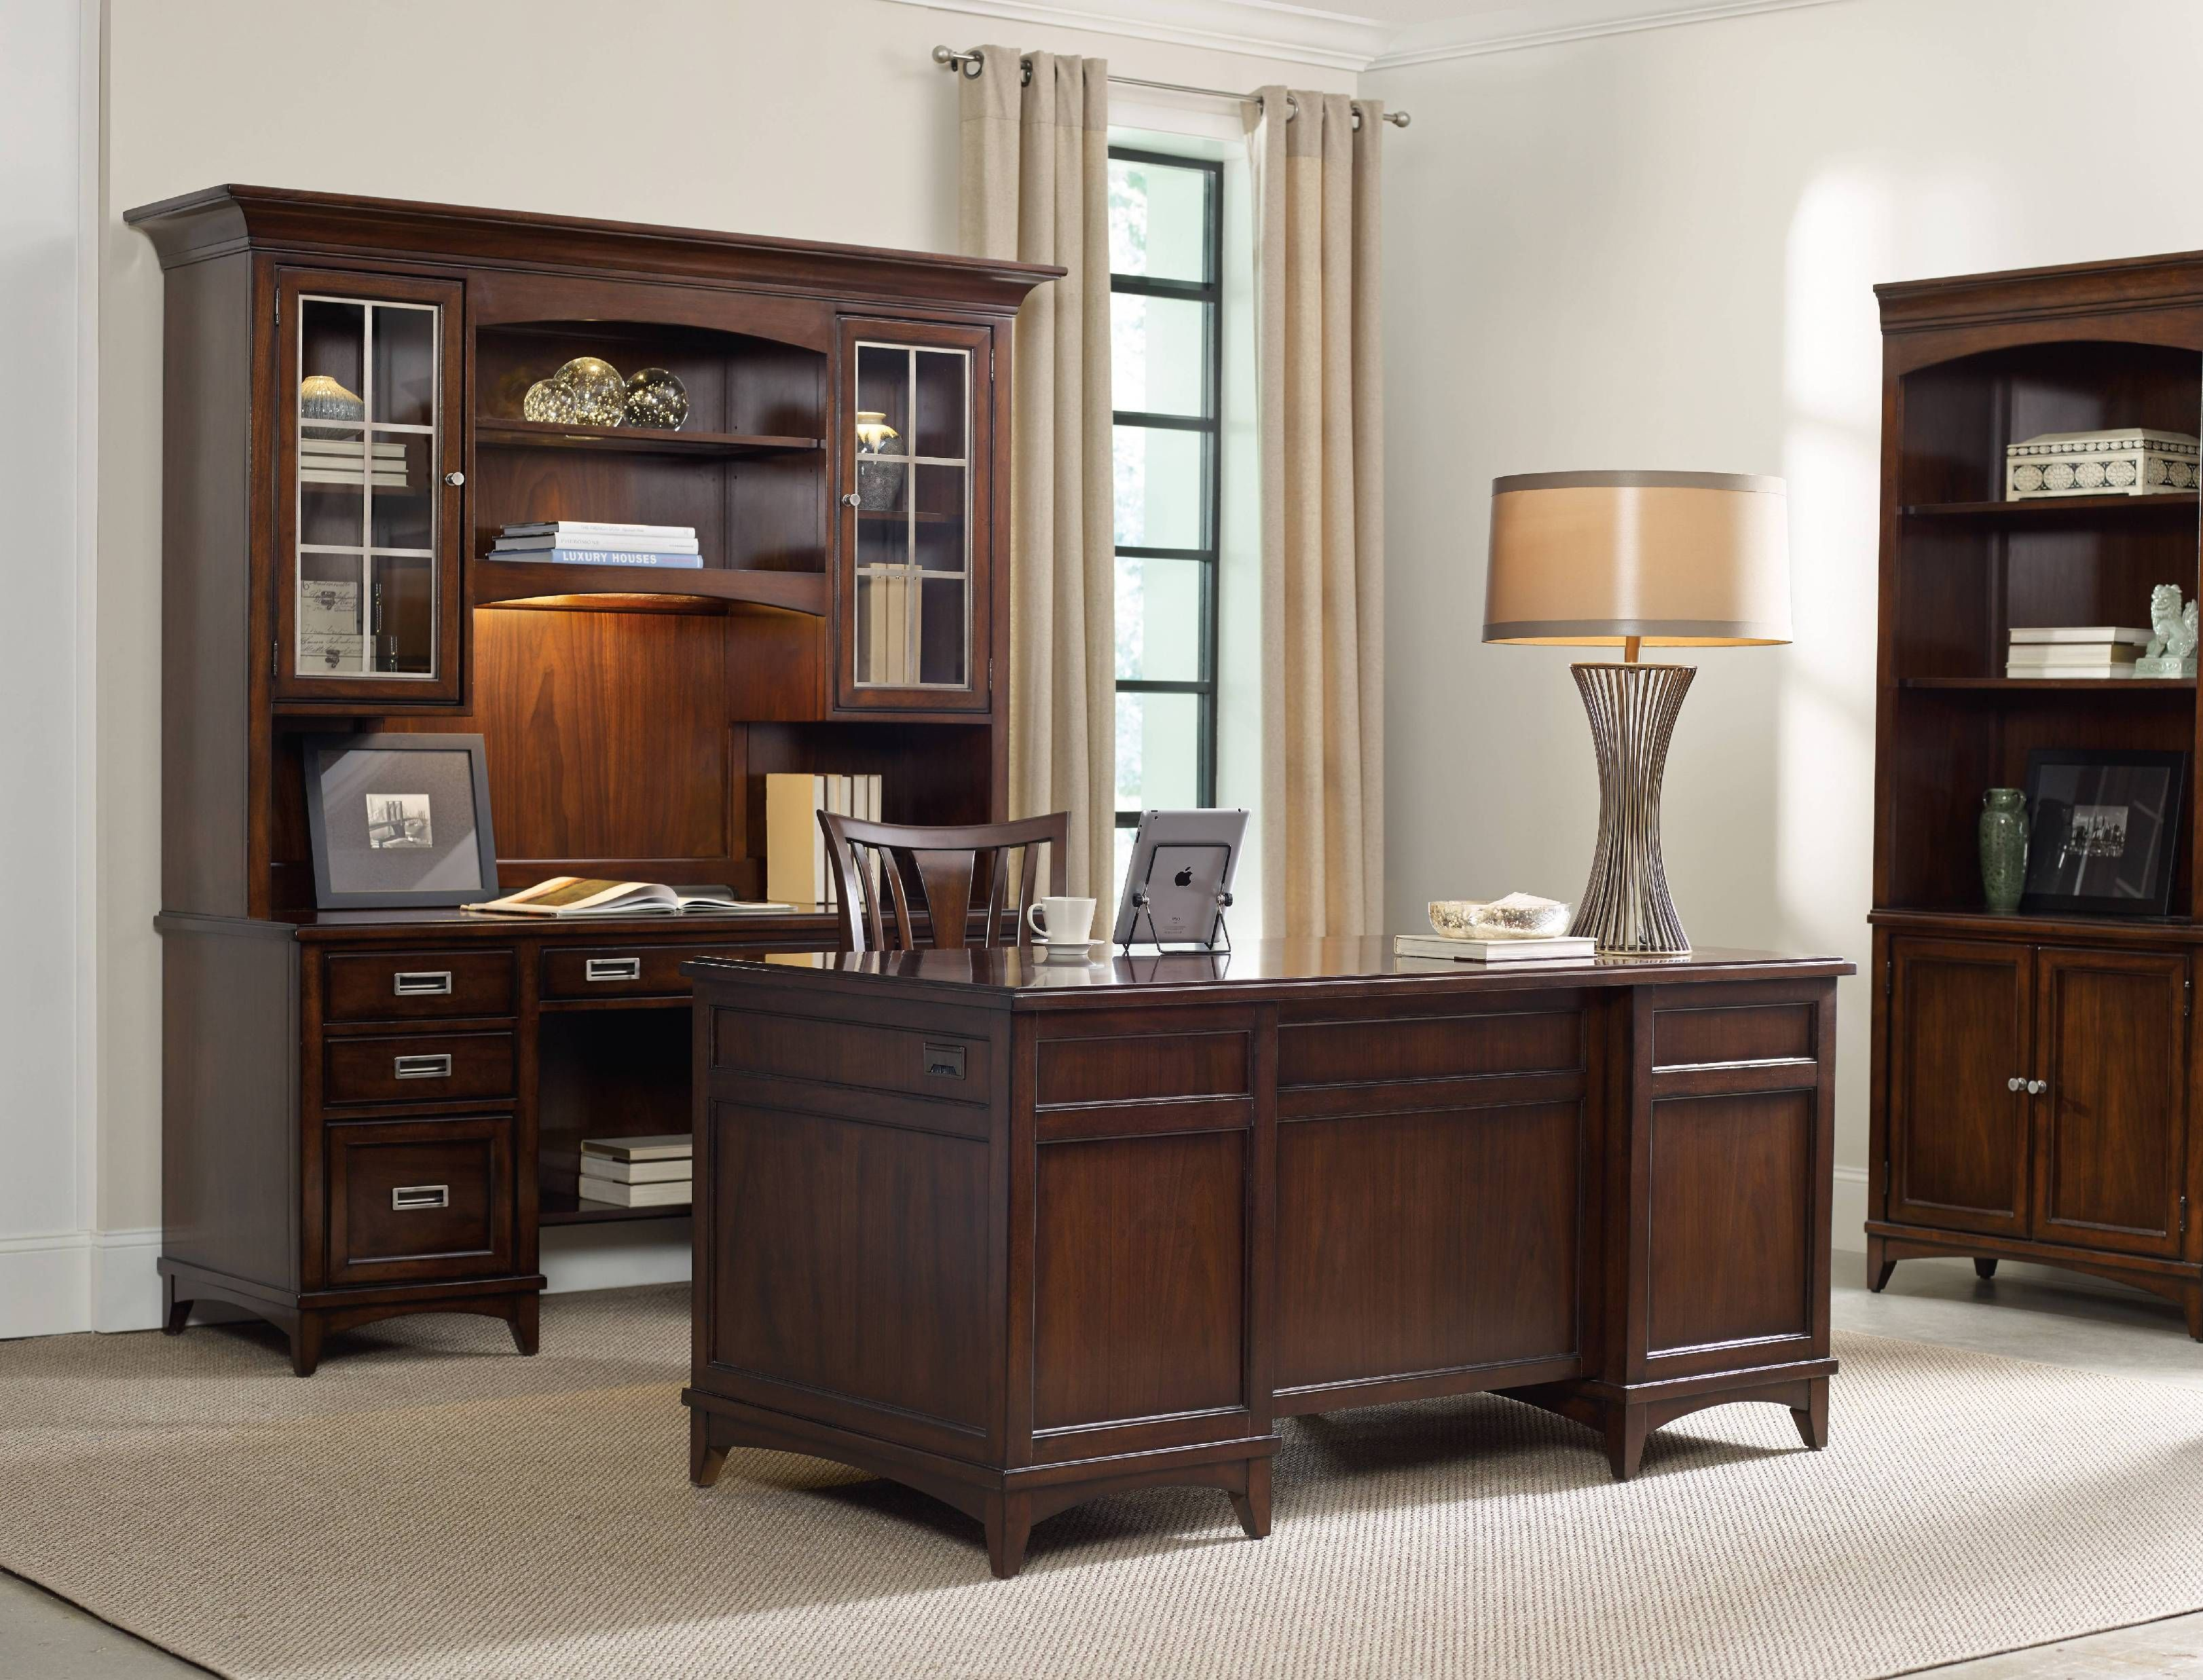 one of our favorite office collections designed by hooker furniture contemporary executive office set with bookcase luxurious office design set